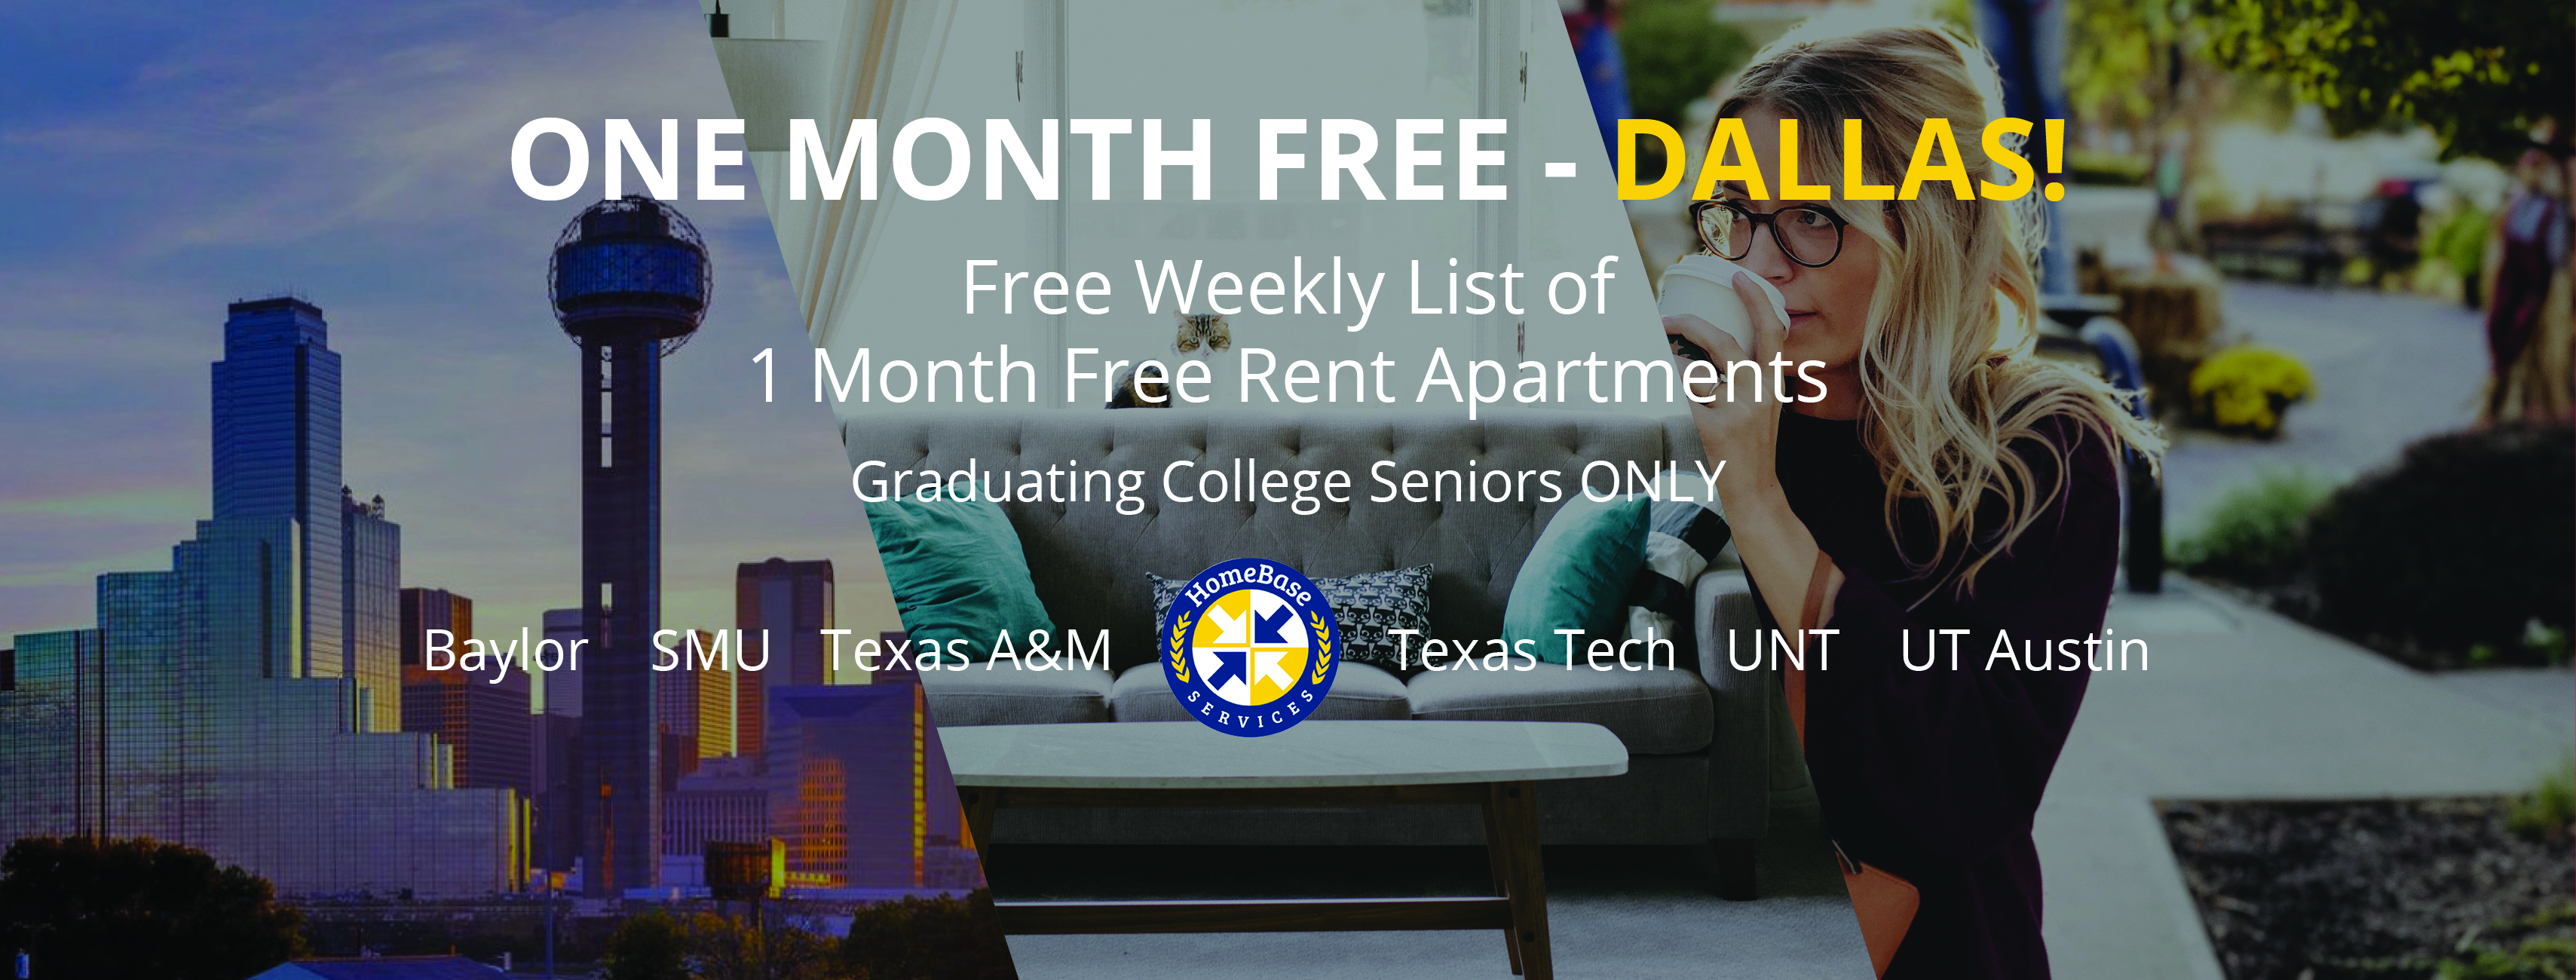 Dallas Apartments Offering 1 month Free – Weekly Specials